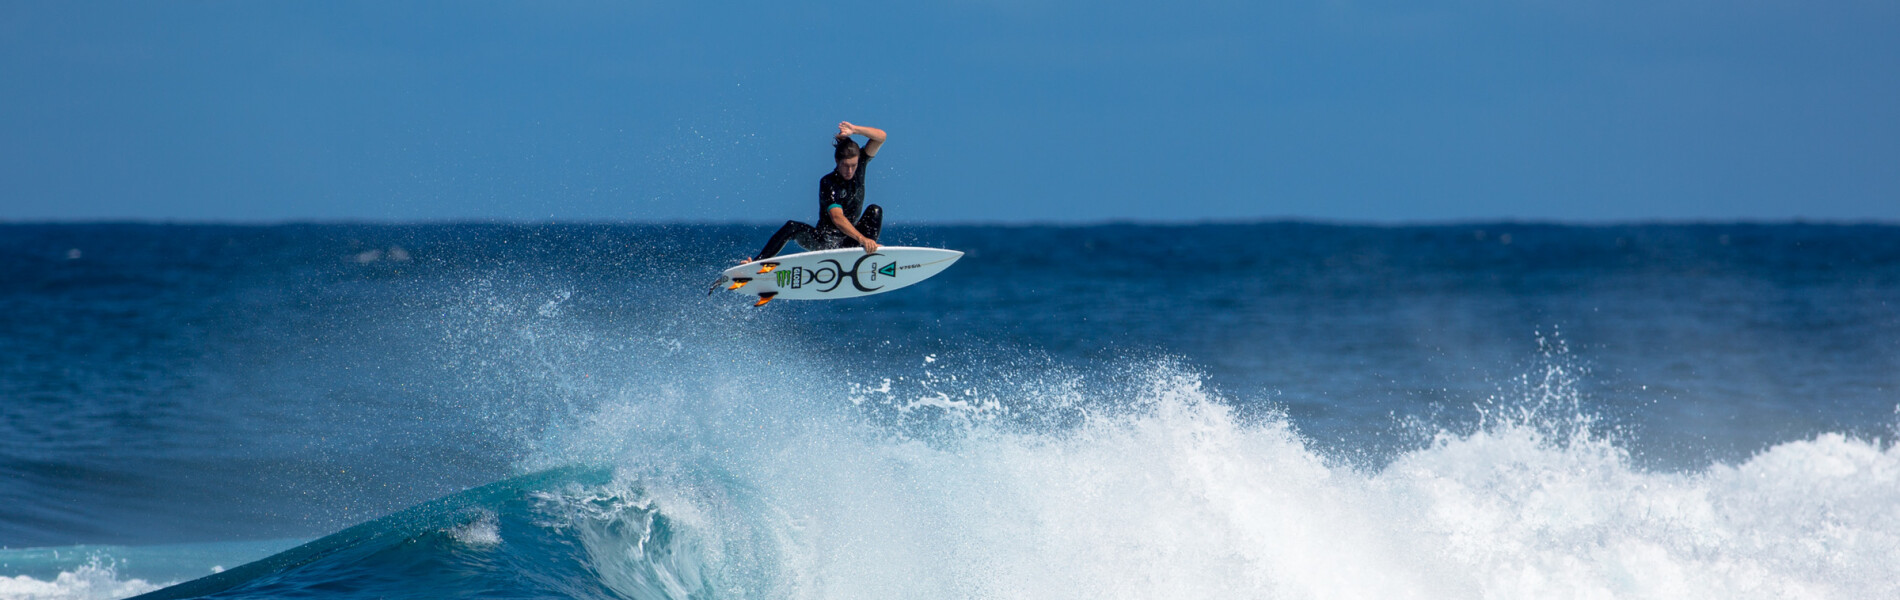 Brendon Gibbens surfing for The Dill & Beeg Project